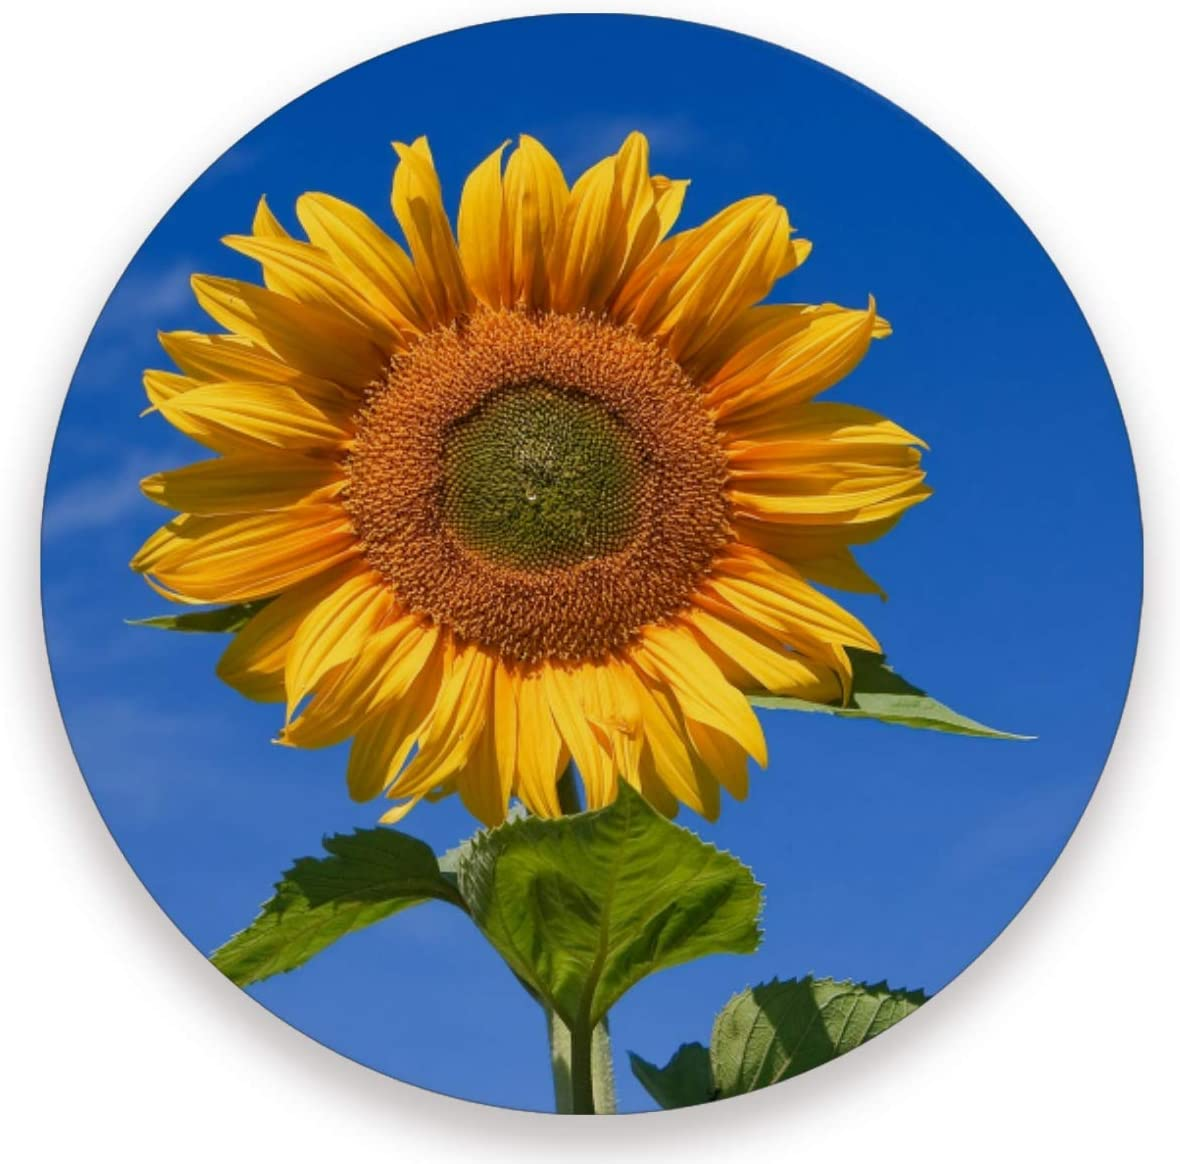 Olinyou Sunflowers Blue Sky Coasters for Drinks Set of 4 Absorbent Ceramic Stone Round Coaster with Cork Base